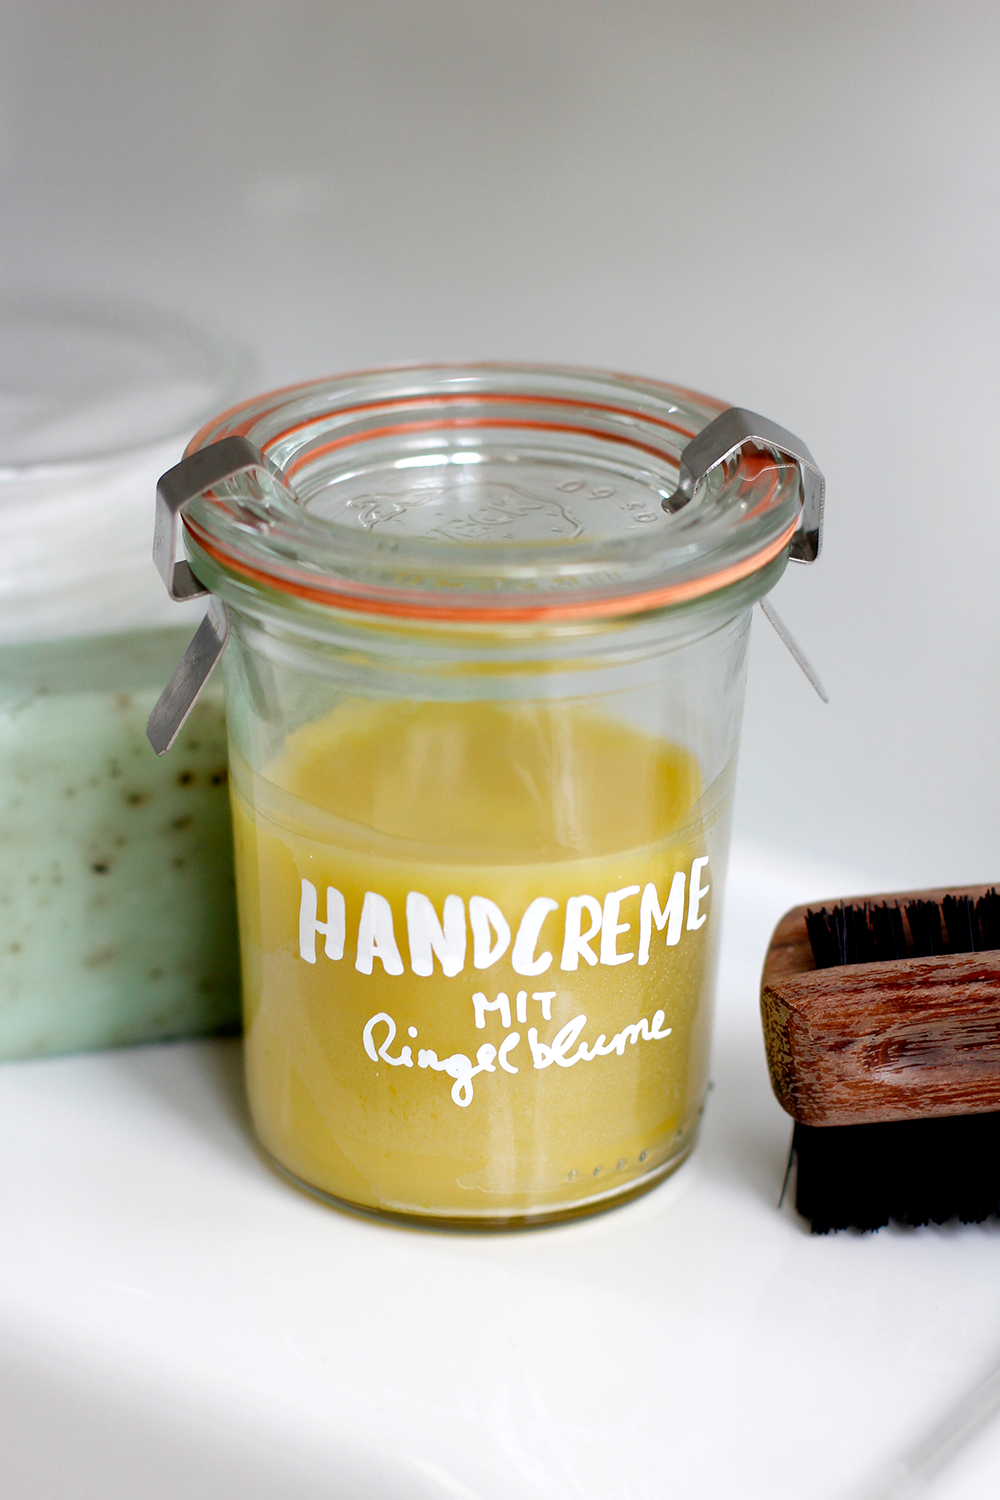 Beauty-DIY: Handcreme mit Ringelblume | we love handmade